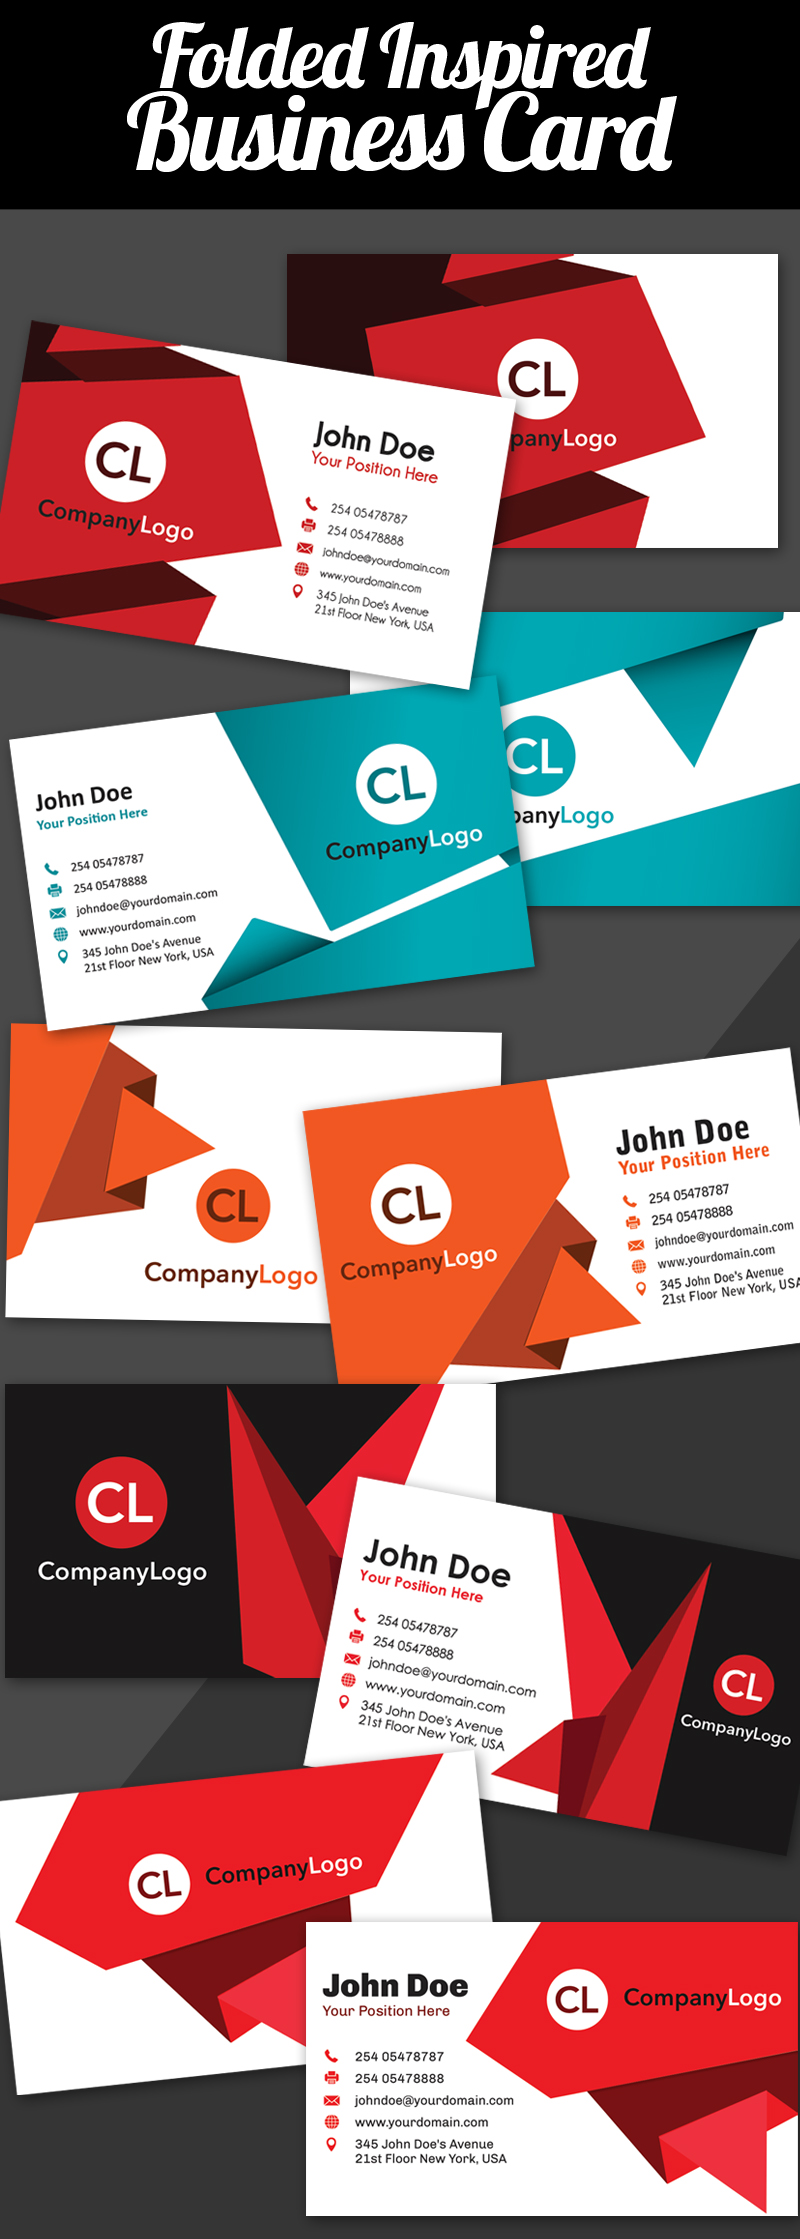 Folded Inspired Business Card